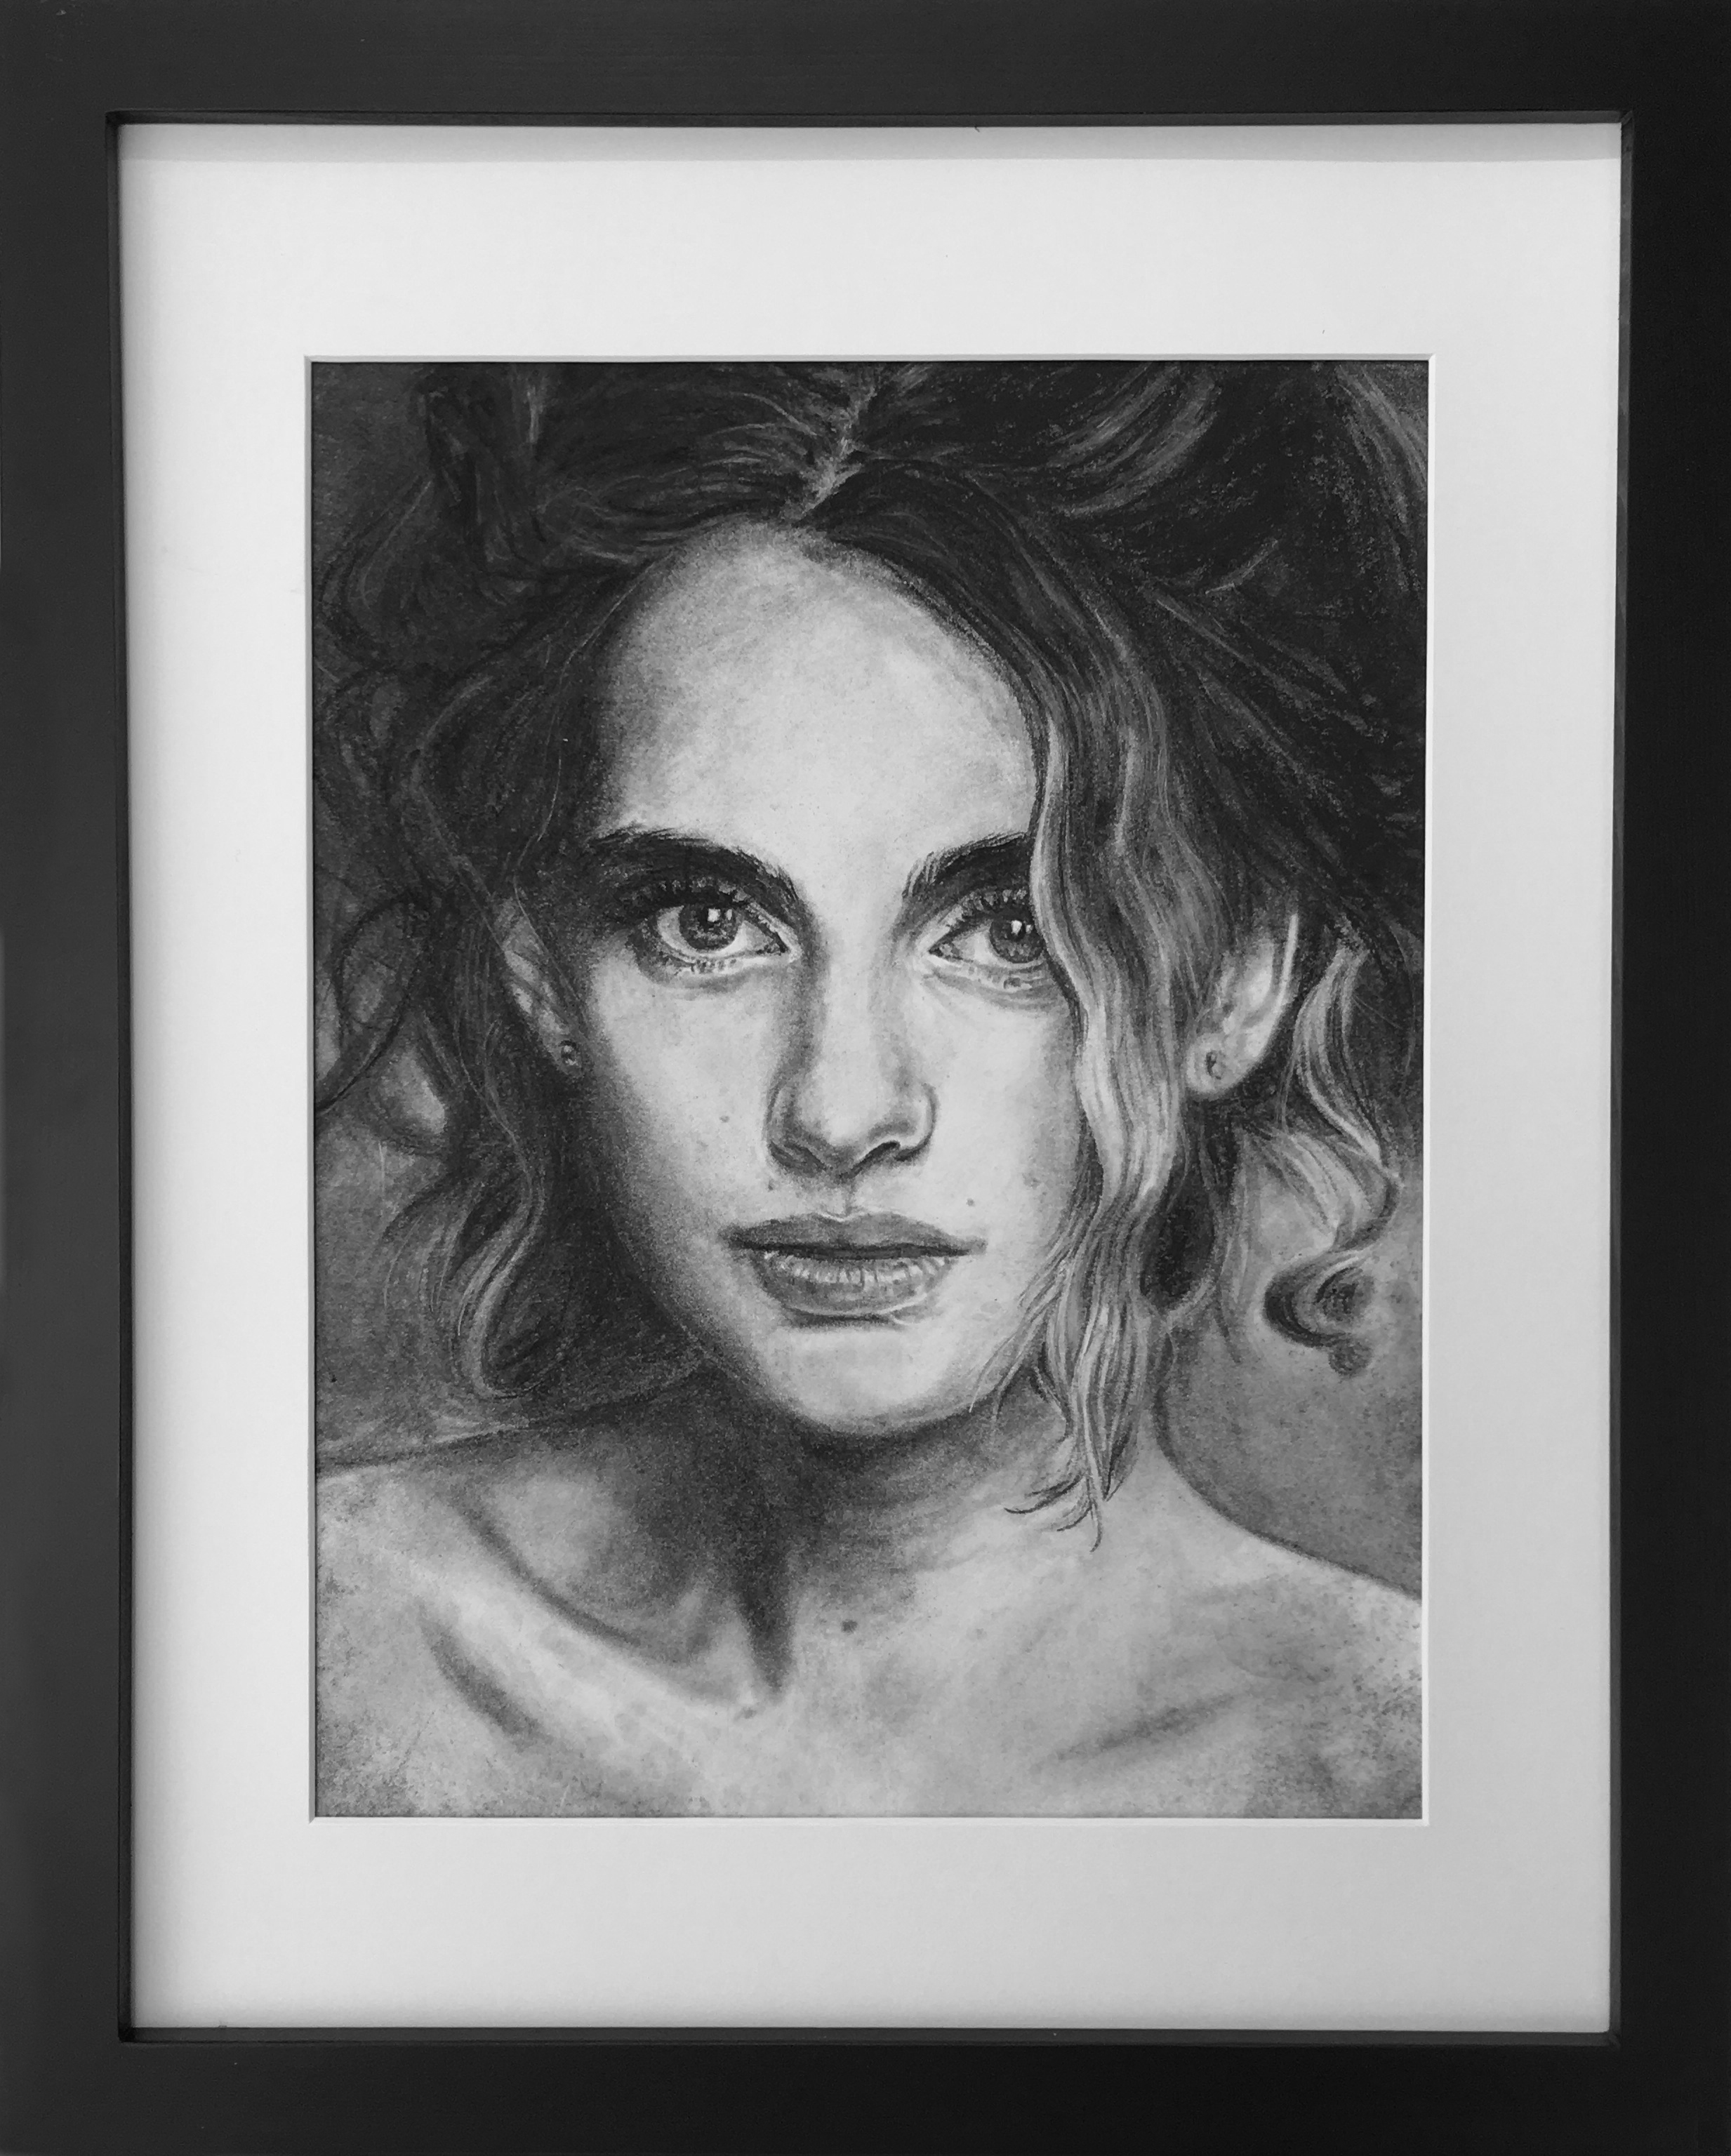 """The Spirit of Ani"", 2017, Ginger Del Rey  charcoal on paper, 10.5"" x 8"" framed to 15"" x 12""  click  here  to purchase"